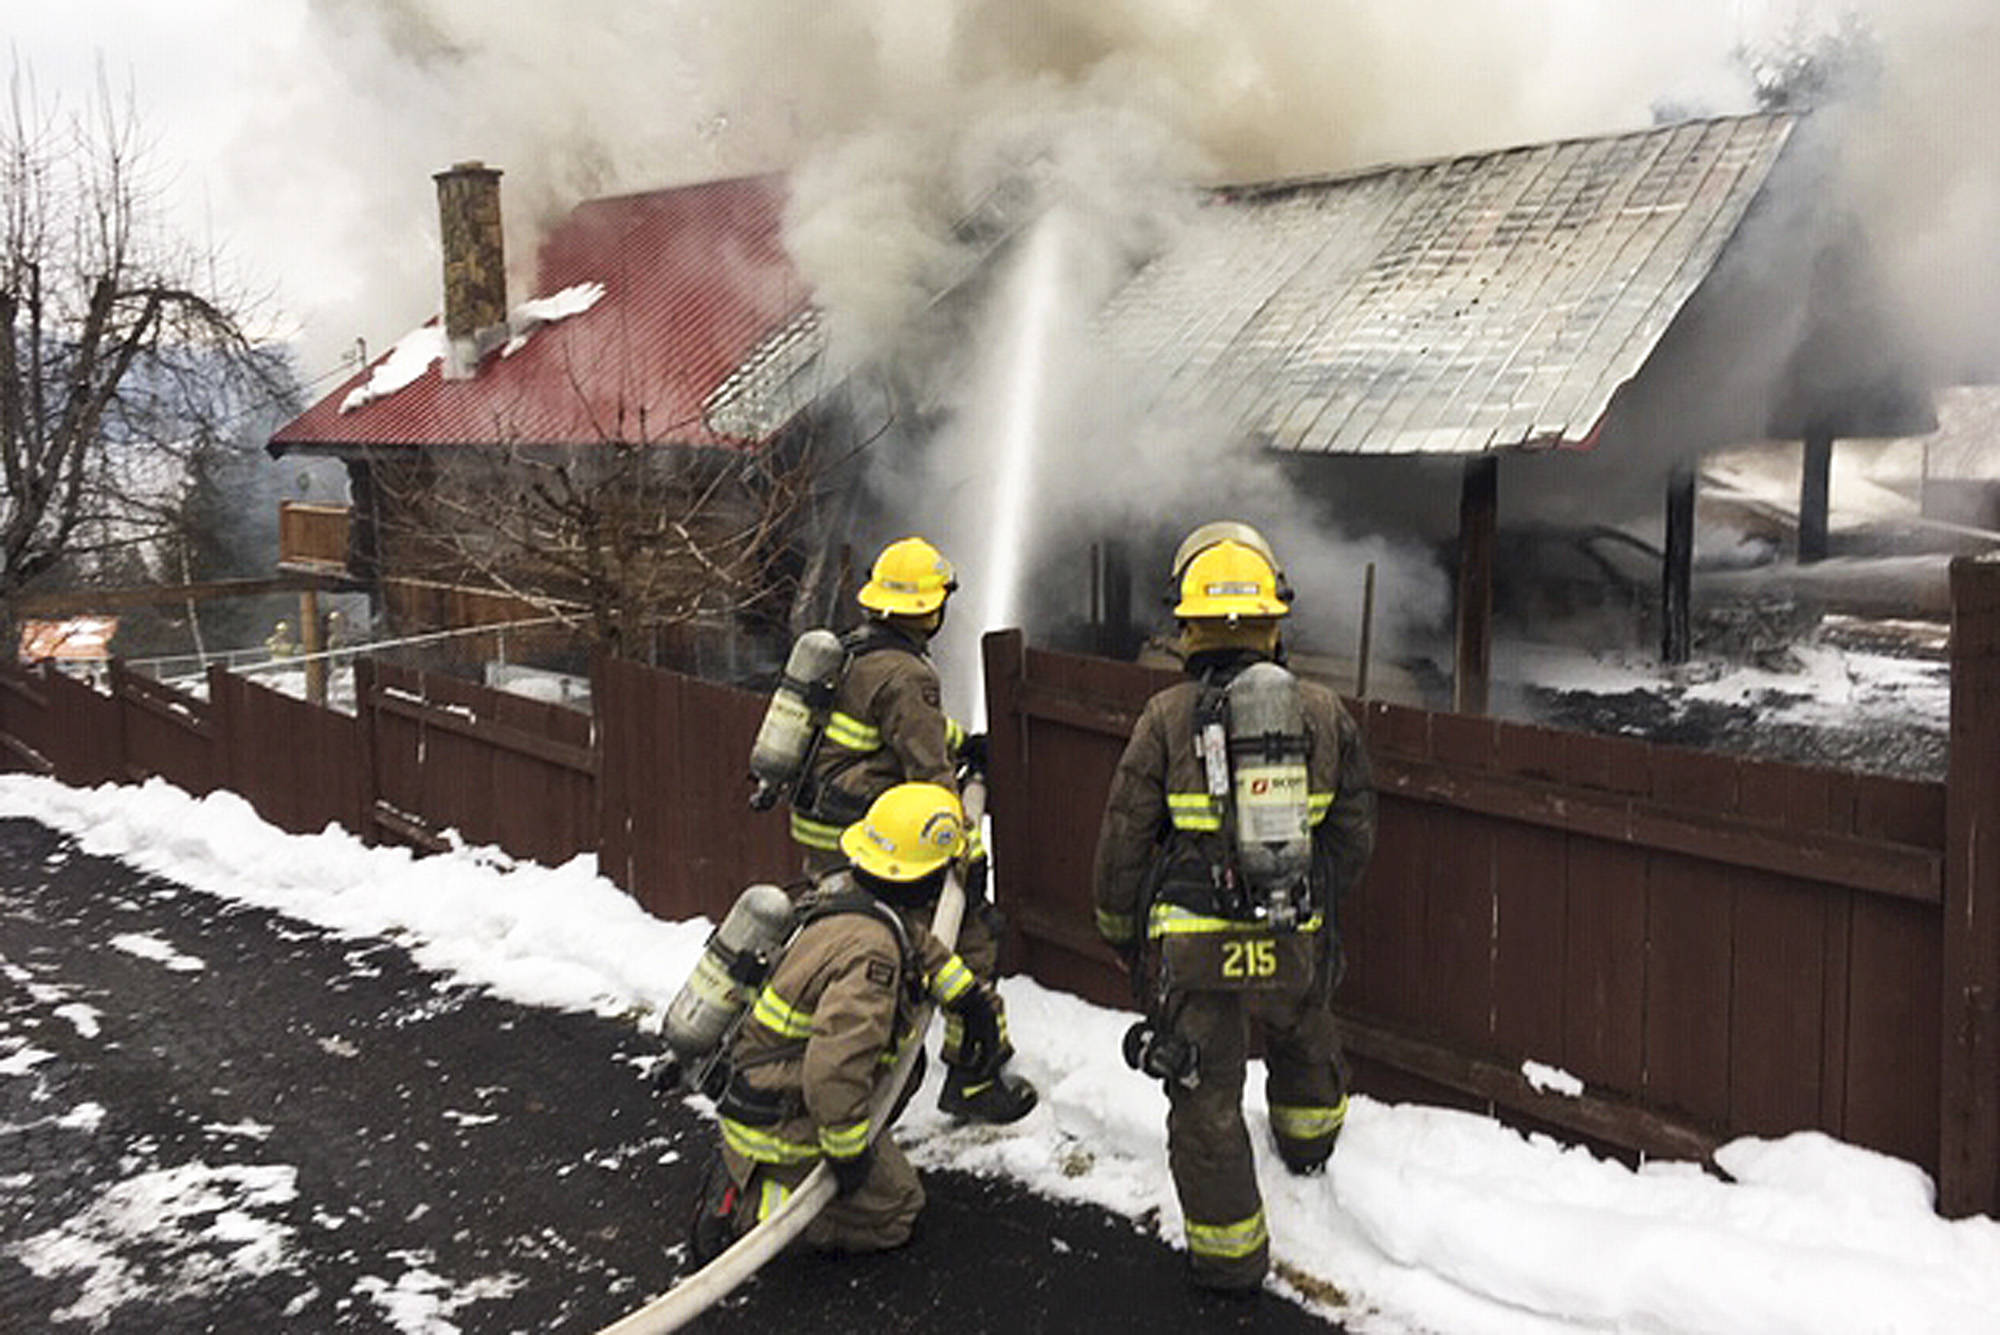 Columbia Shuswap Regional District firefighters attack a blaze in a home on Centennial Road in Blind Bay on Monday, Jan. 14.                                (Sean Coubrough photo)